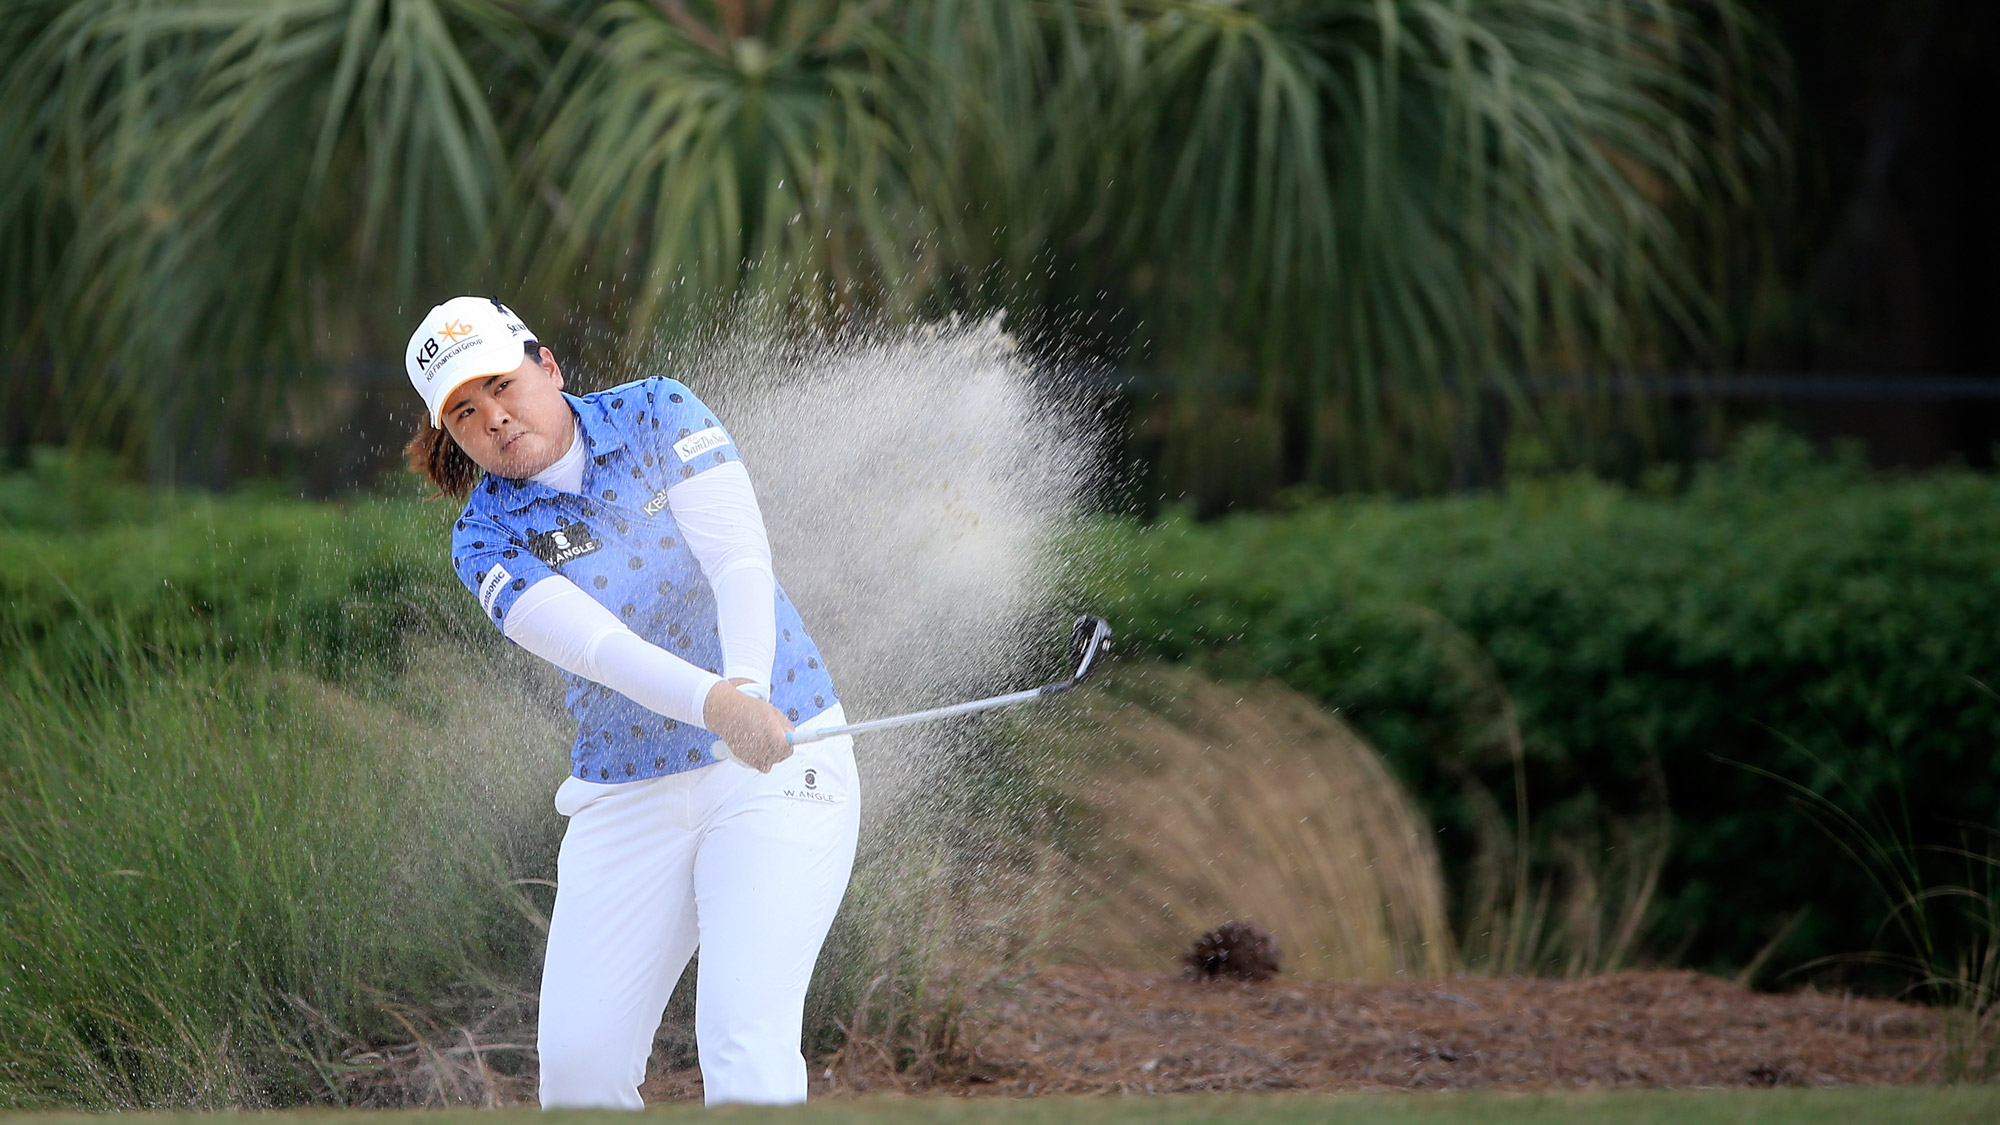 Inbee Park of South Korea plays a shot on the sixth hole during the first round of the CME Group Tour Championship at Tiburon Golf Club